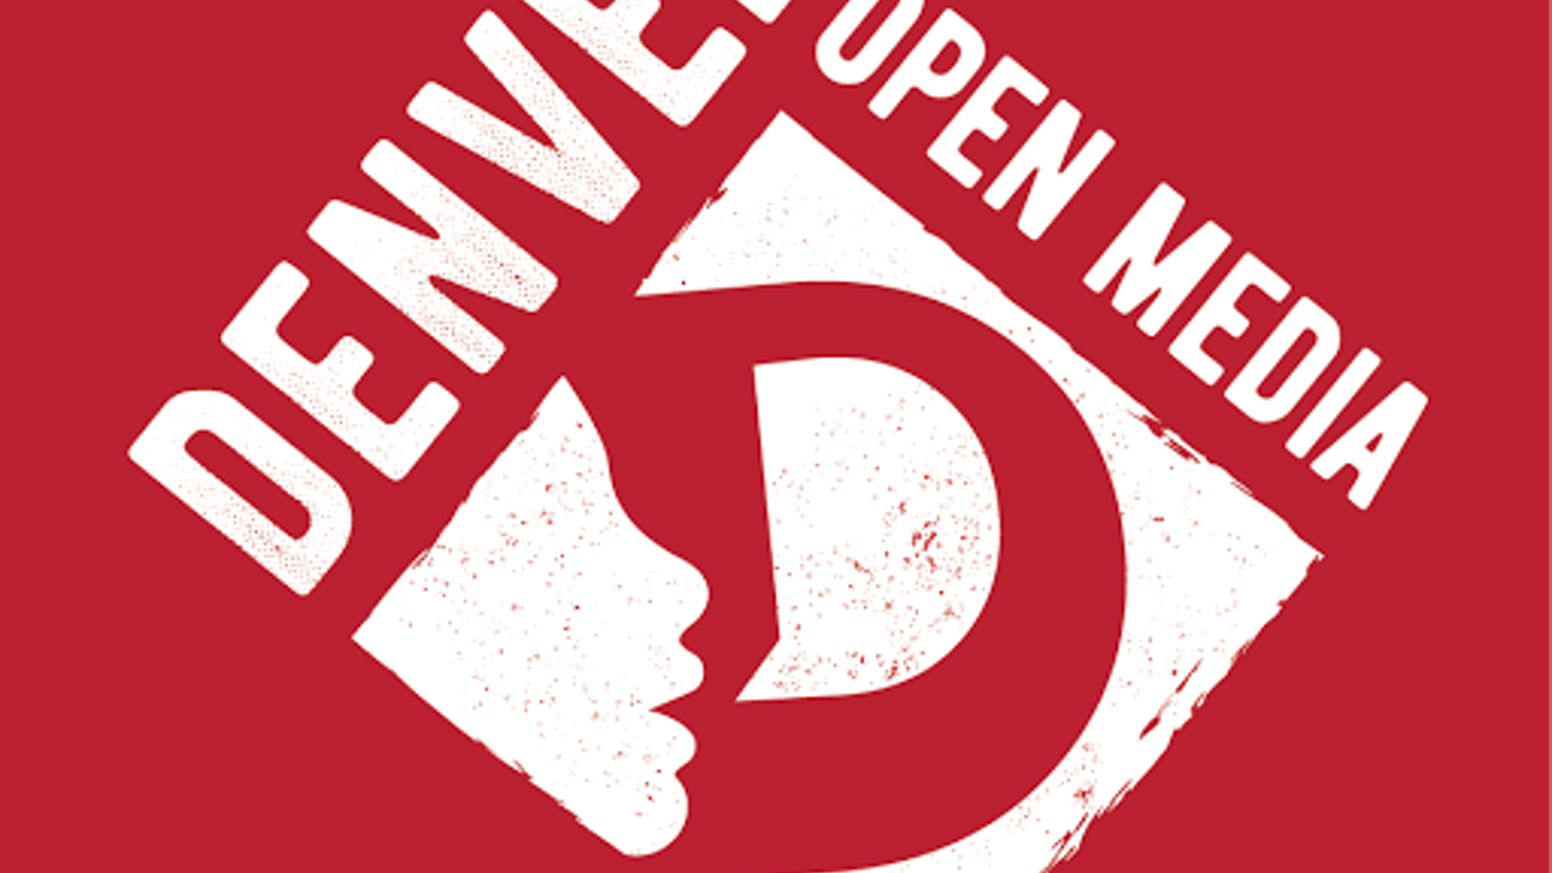 The Kickstarter has completed, but you can still get involved! Visit denveropenmedia.org to become a member, and join us June 3rd for our Launch Party!700 Kalamath St. Denver, CO